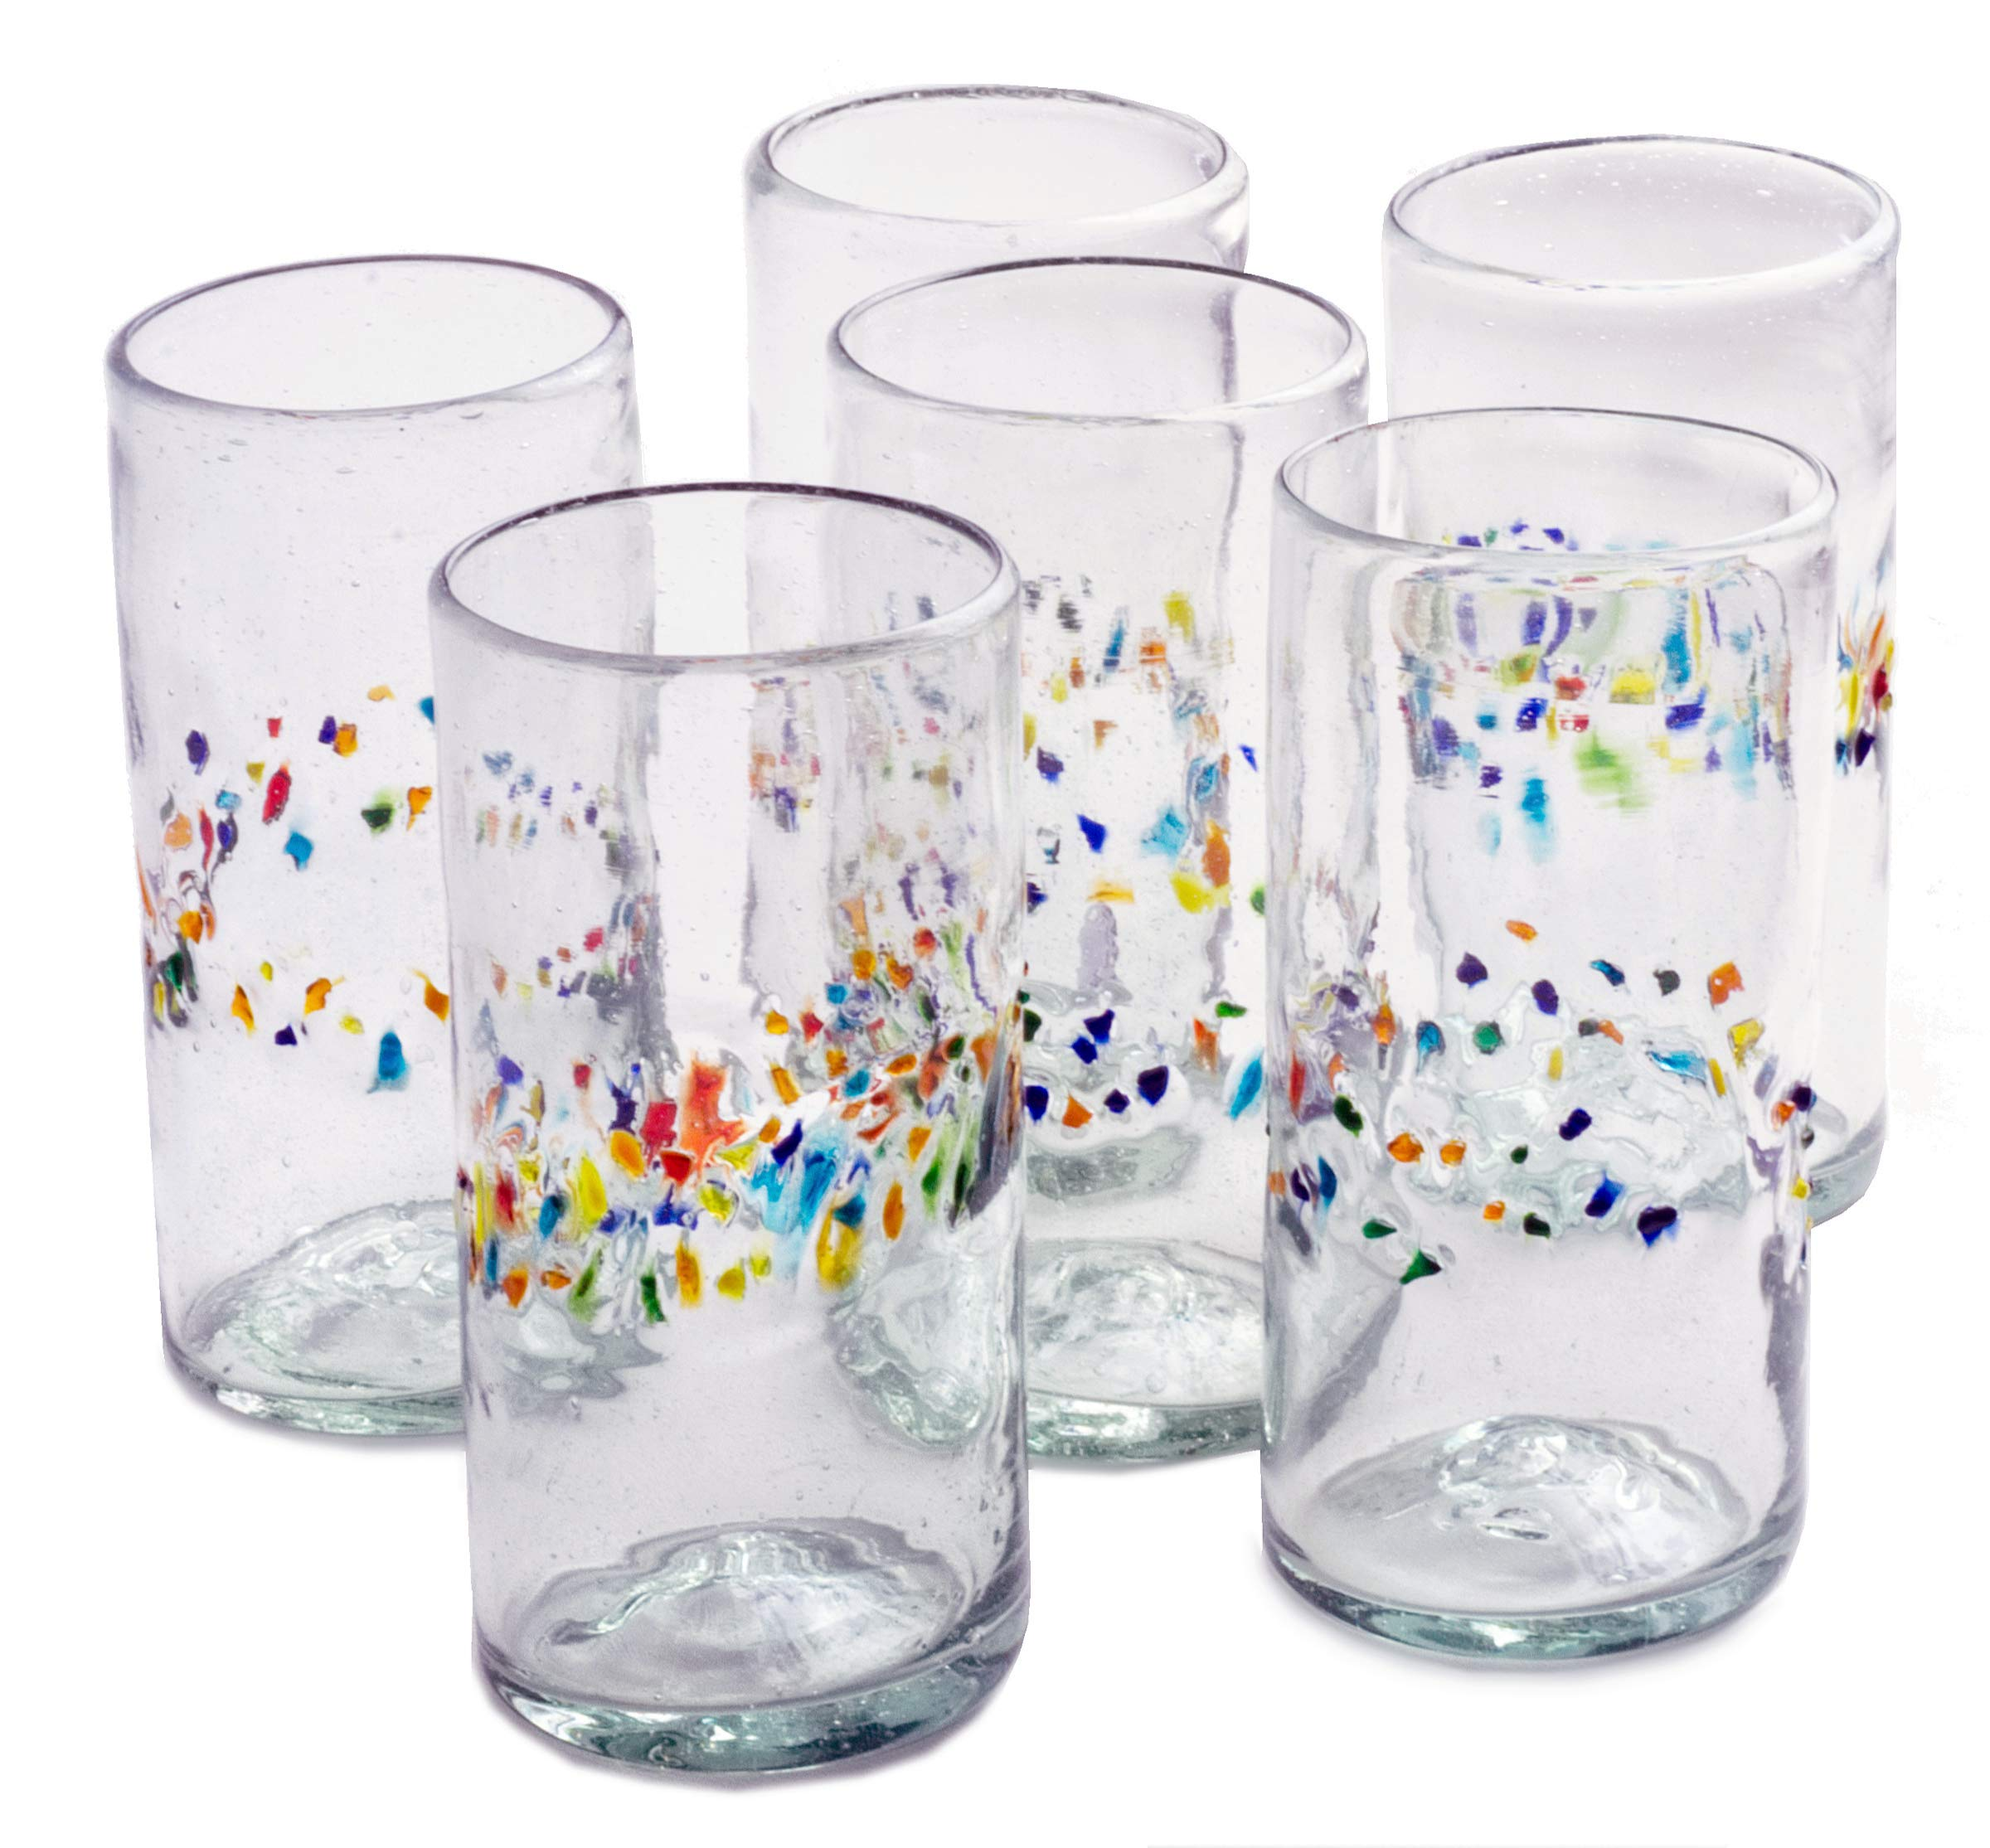 Orion Tutti Frutti 22 oz Tall Tumbler - Set of 6 by Orions Table (Image #2)